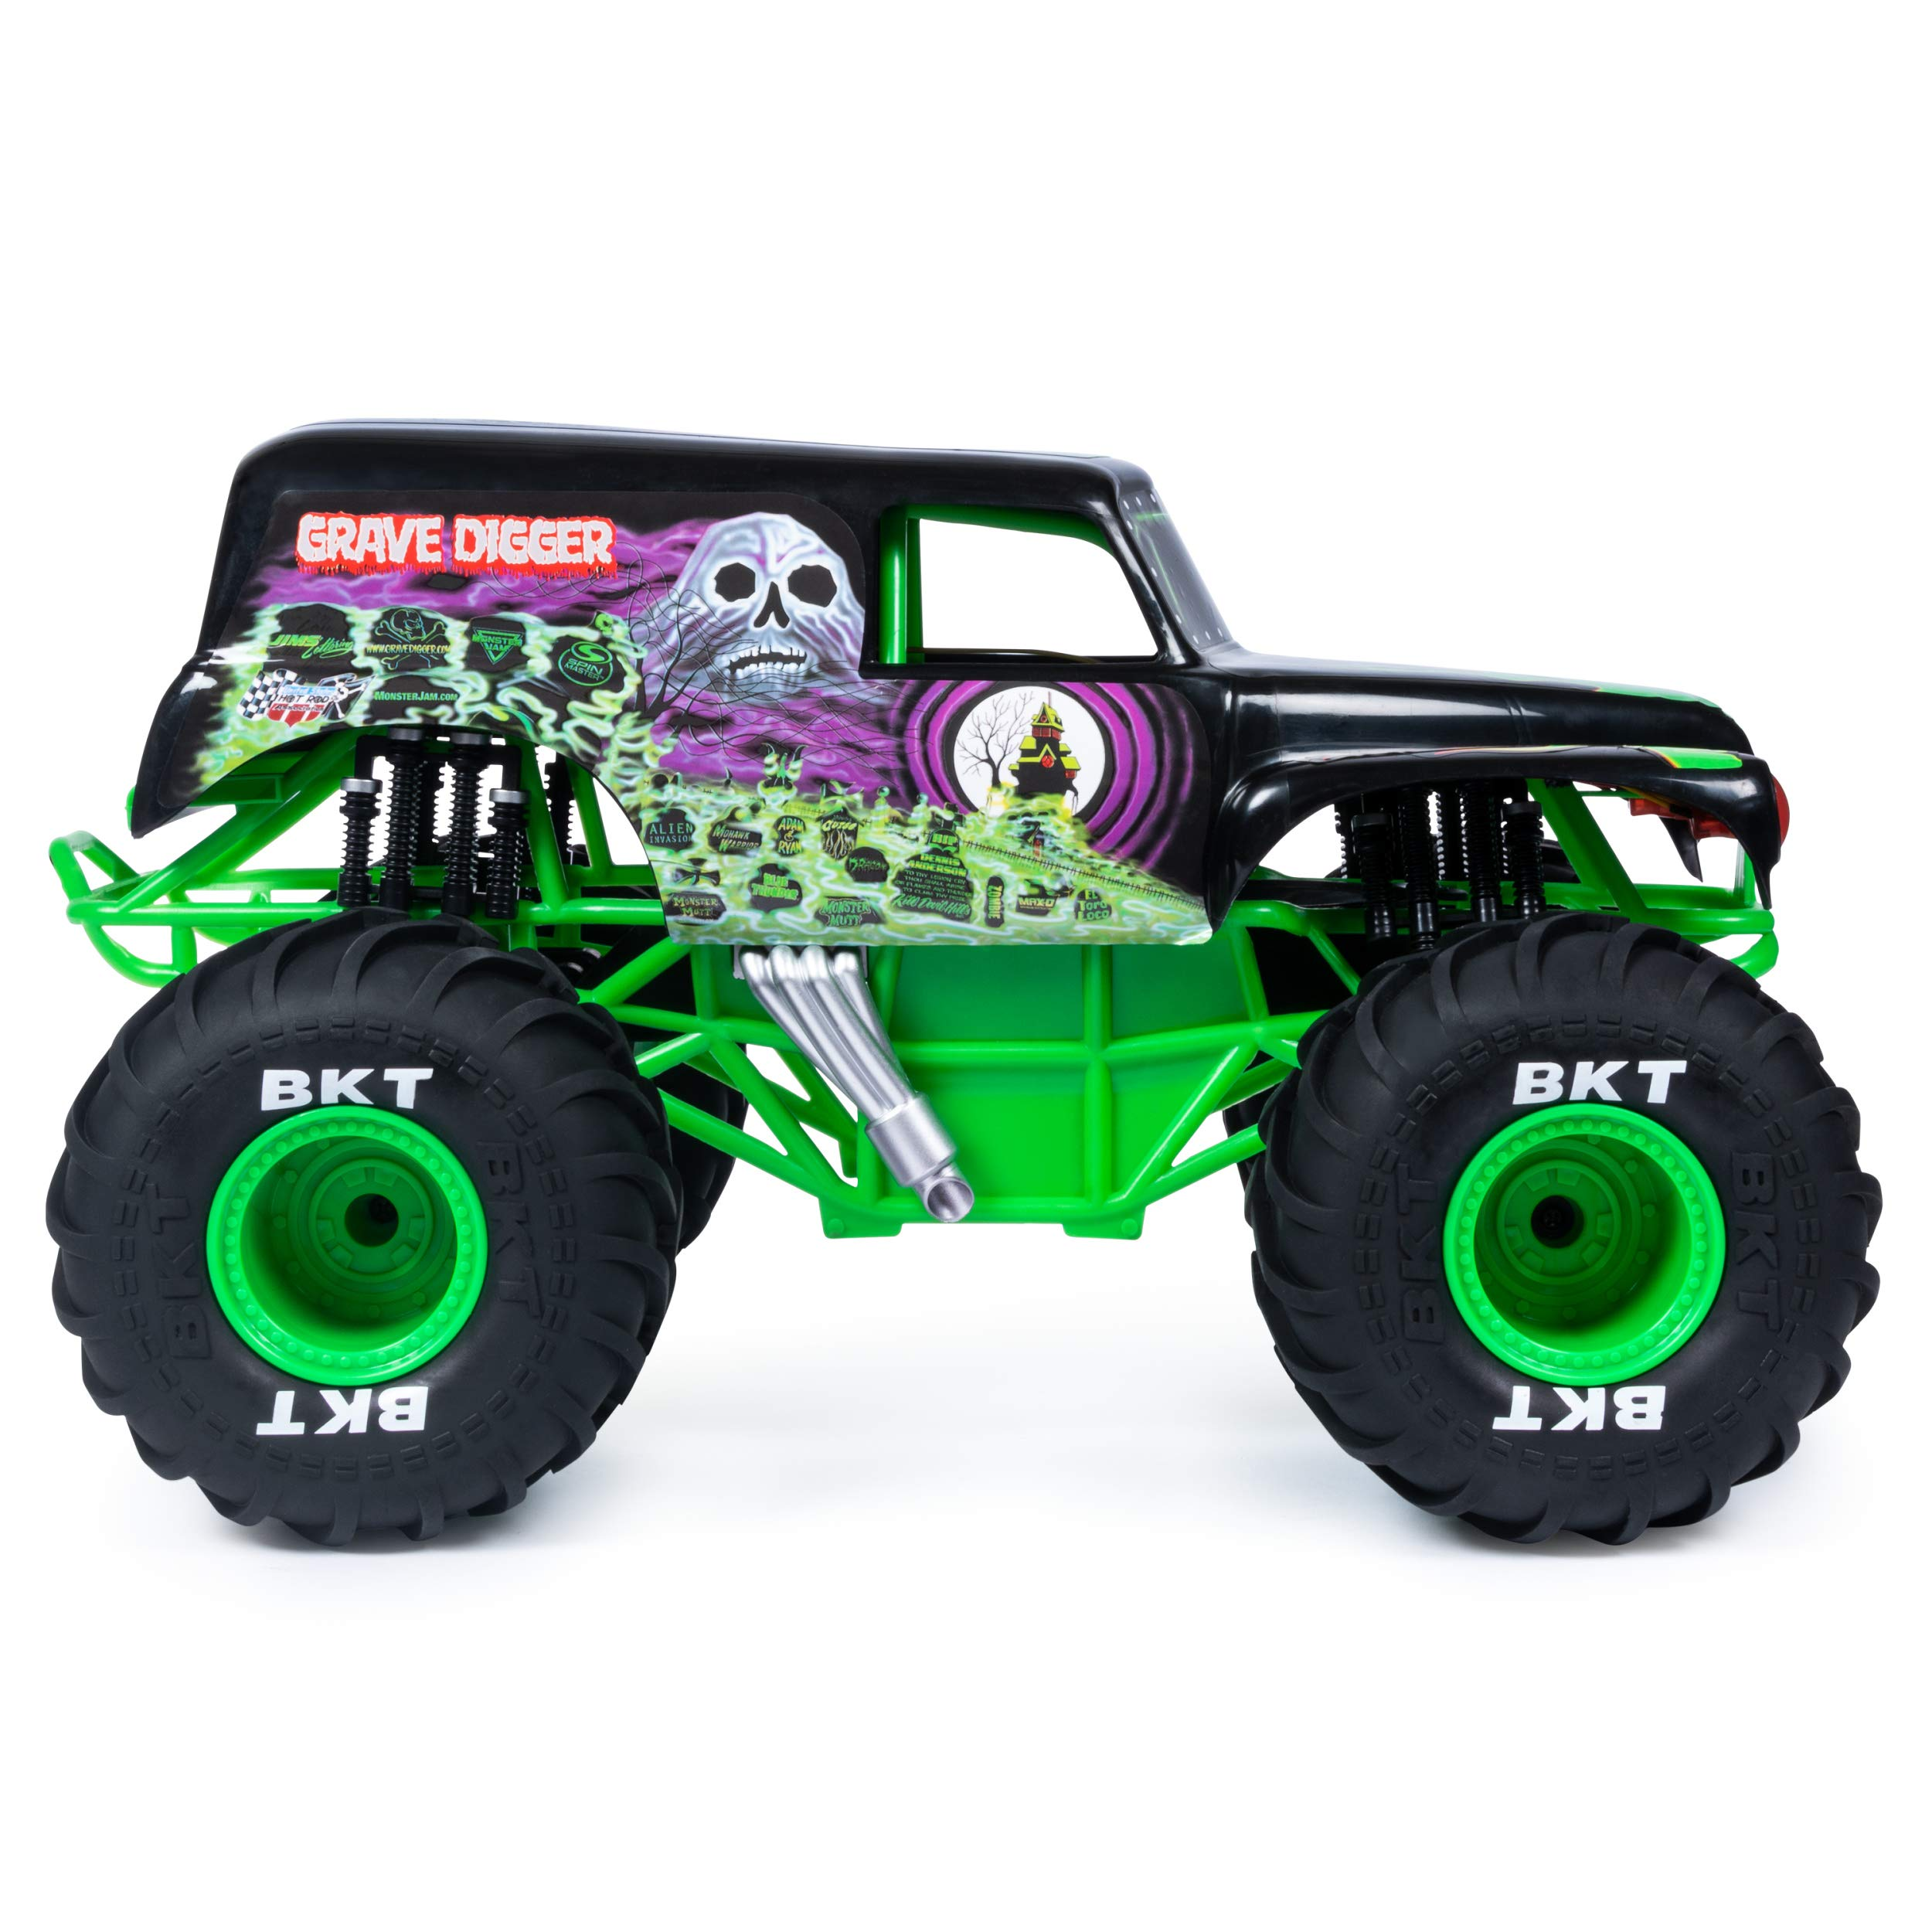 Monster Jam Official Grave Digger Rc Truck 1: 10 Scale with Lights & Sounds For Ages 4 & Up by Monster Jam (Image #5)